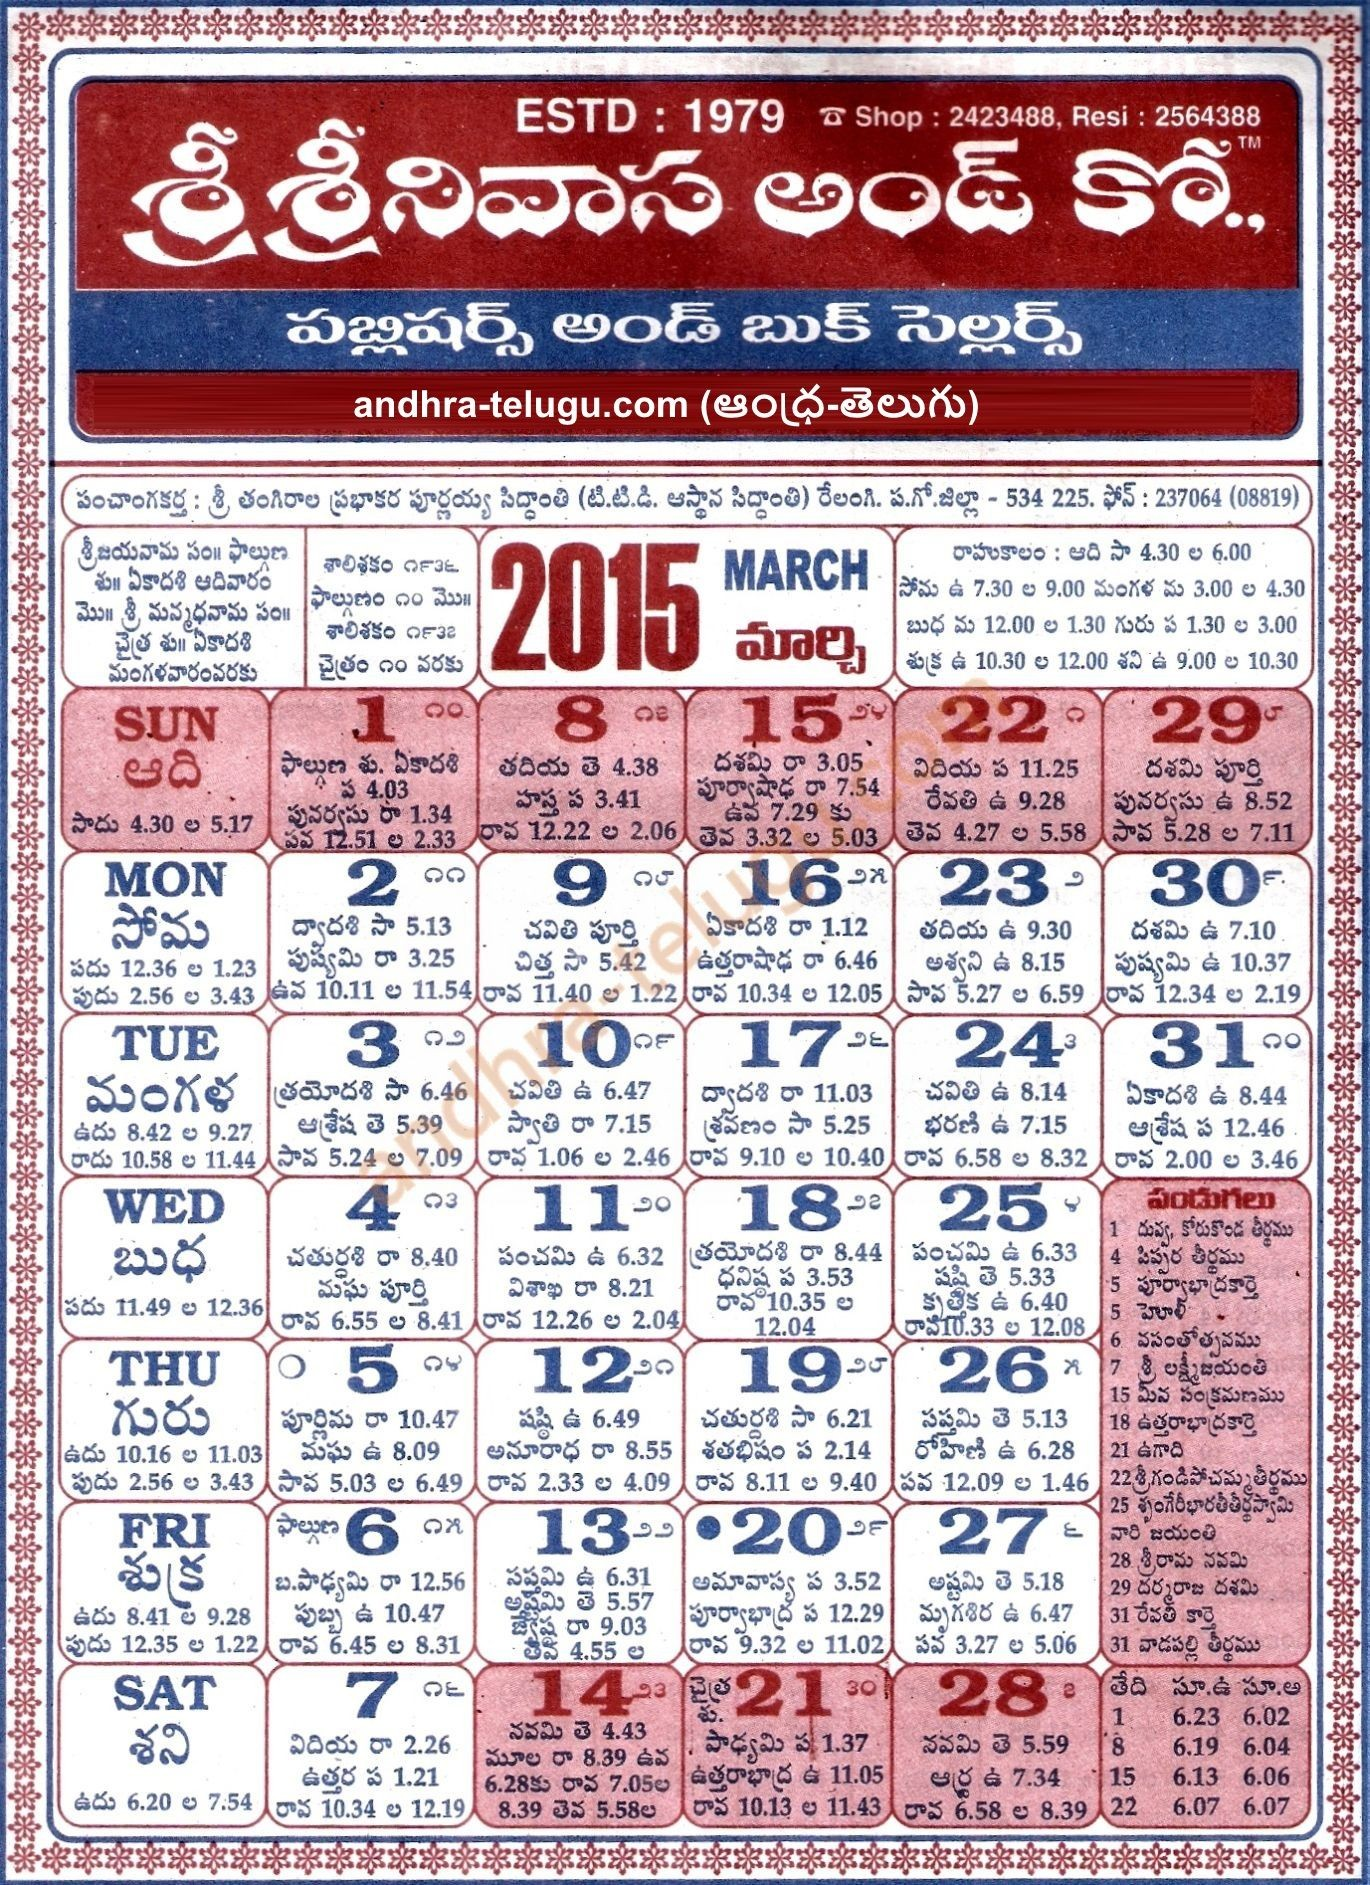 March 1979 Calendar Más Recientemente Liberado Telugu Localnews Telugulocalnews On Pinterest Of March 1979 Calendar Más Recientemente Liberado Telugu Localnews Telugulocalnews On Pinterest